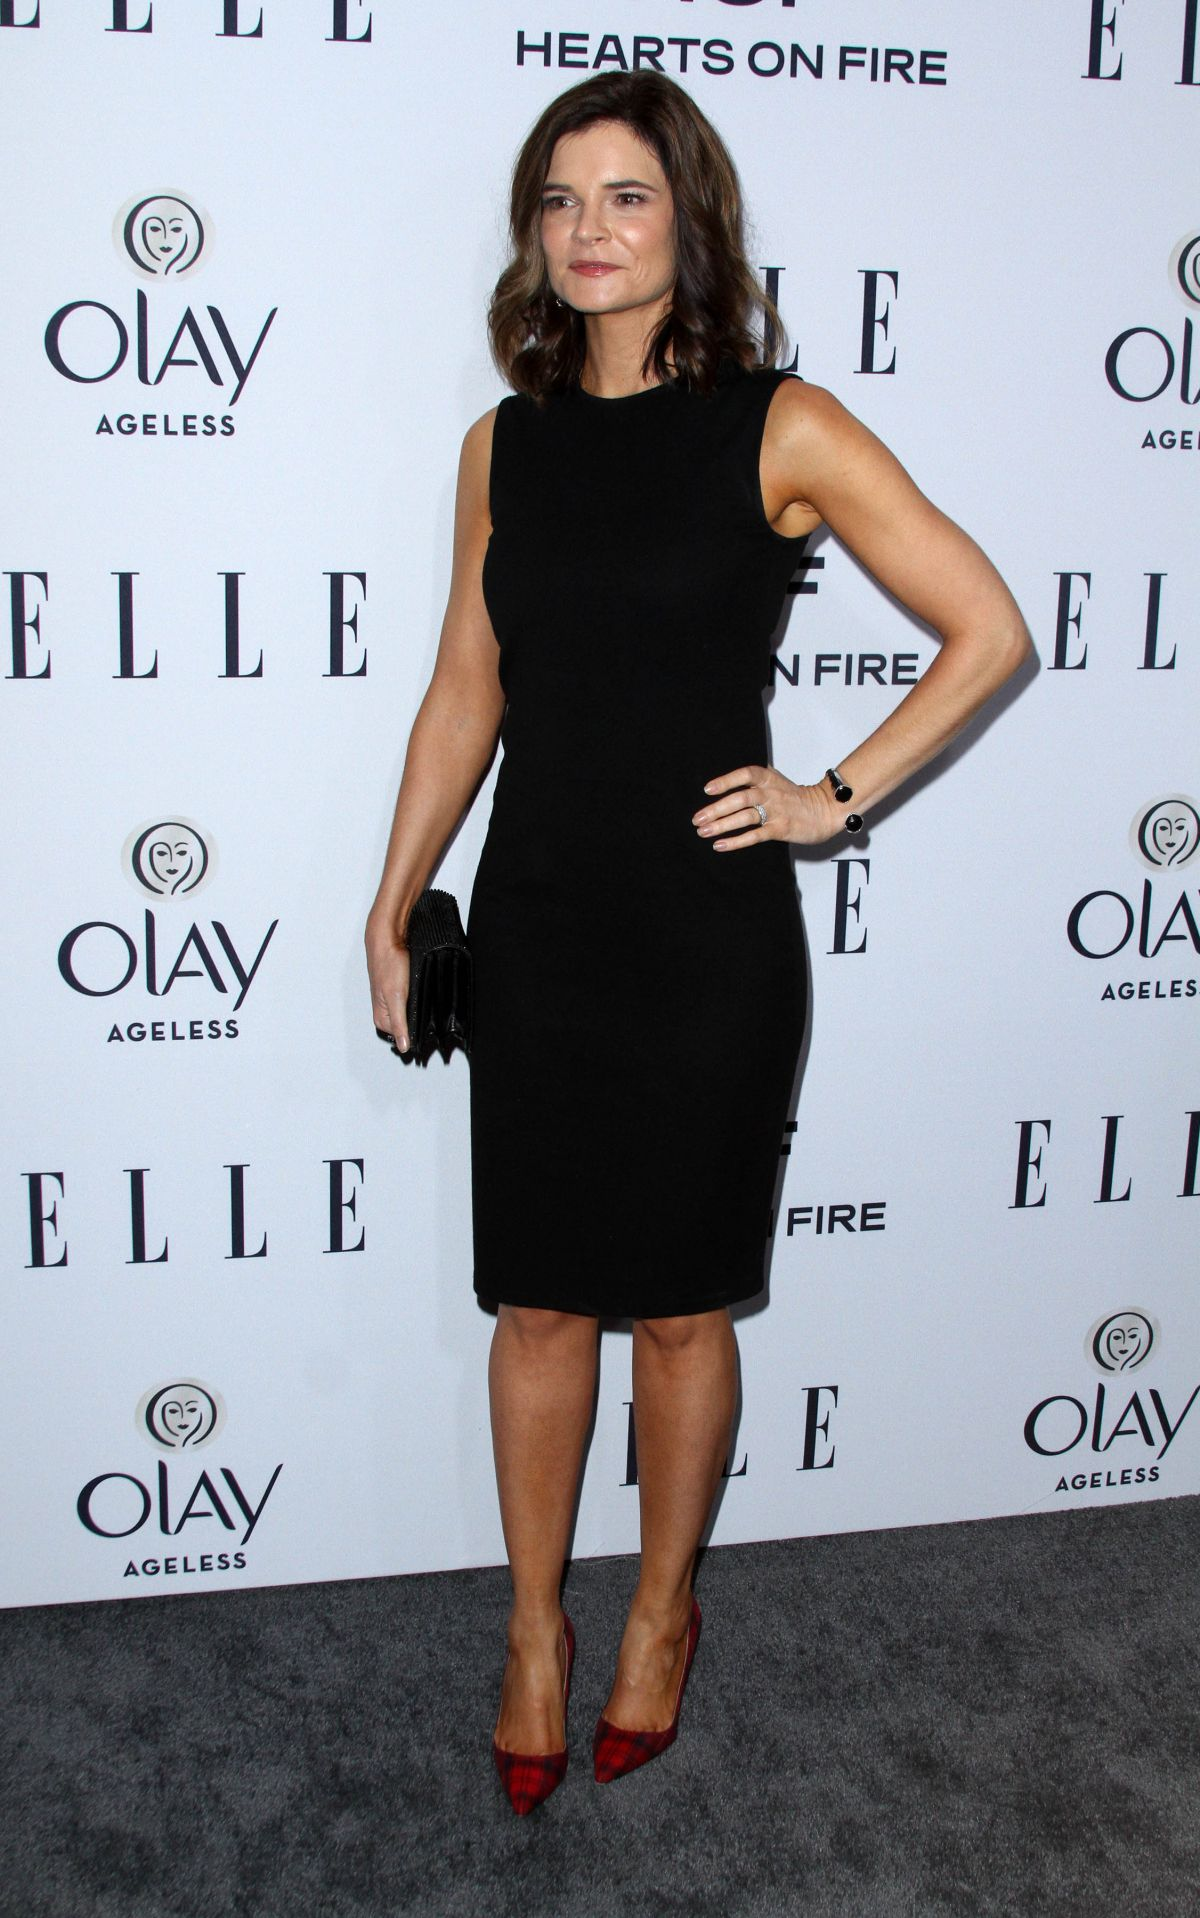 BETSY BRANDT at Elle's Women in Television 2016 Celebration in Los Angeles 01/20/2016